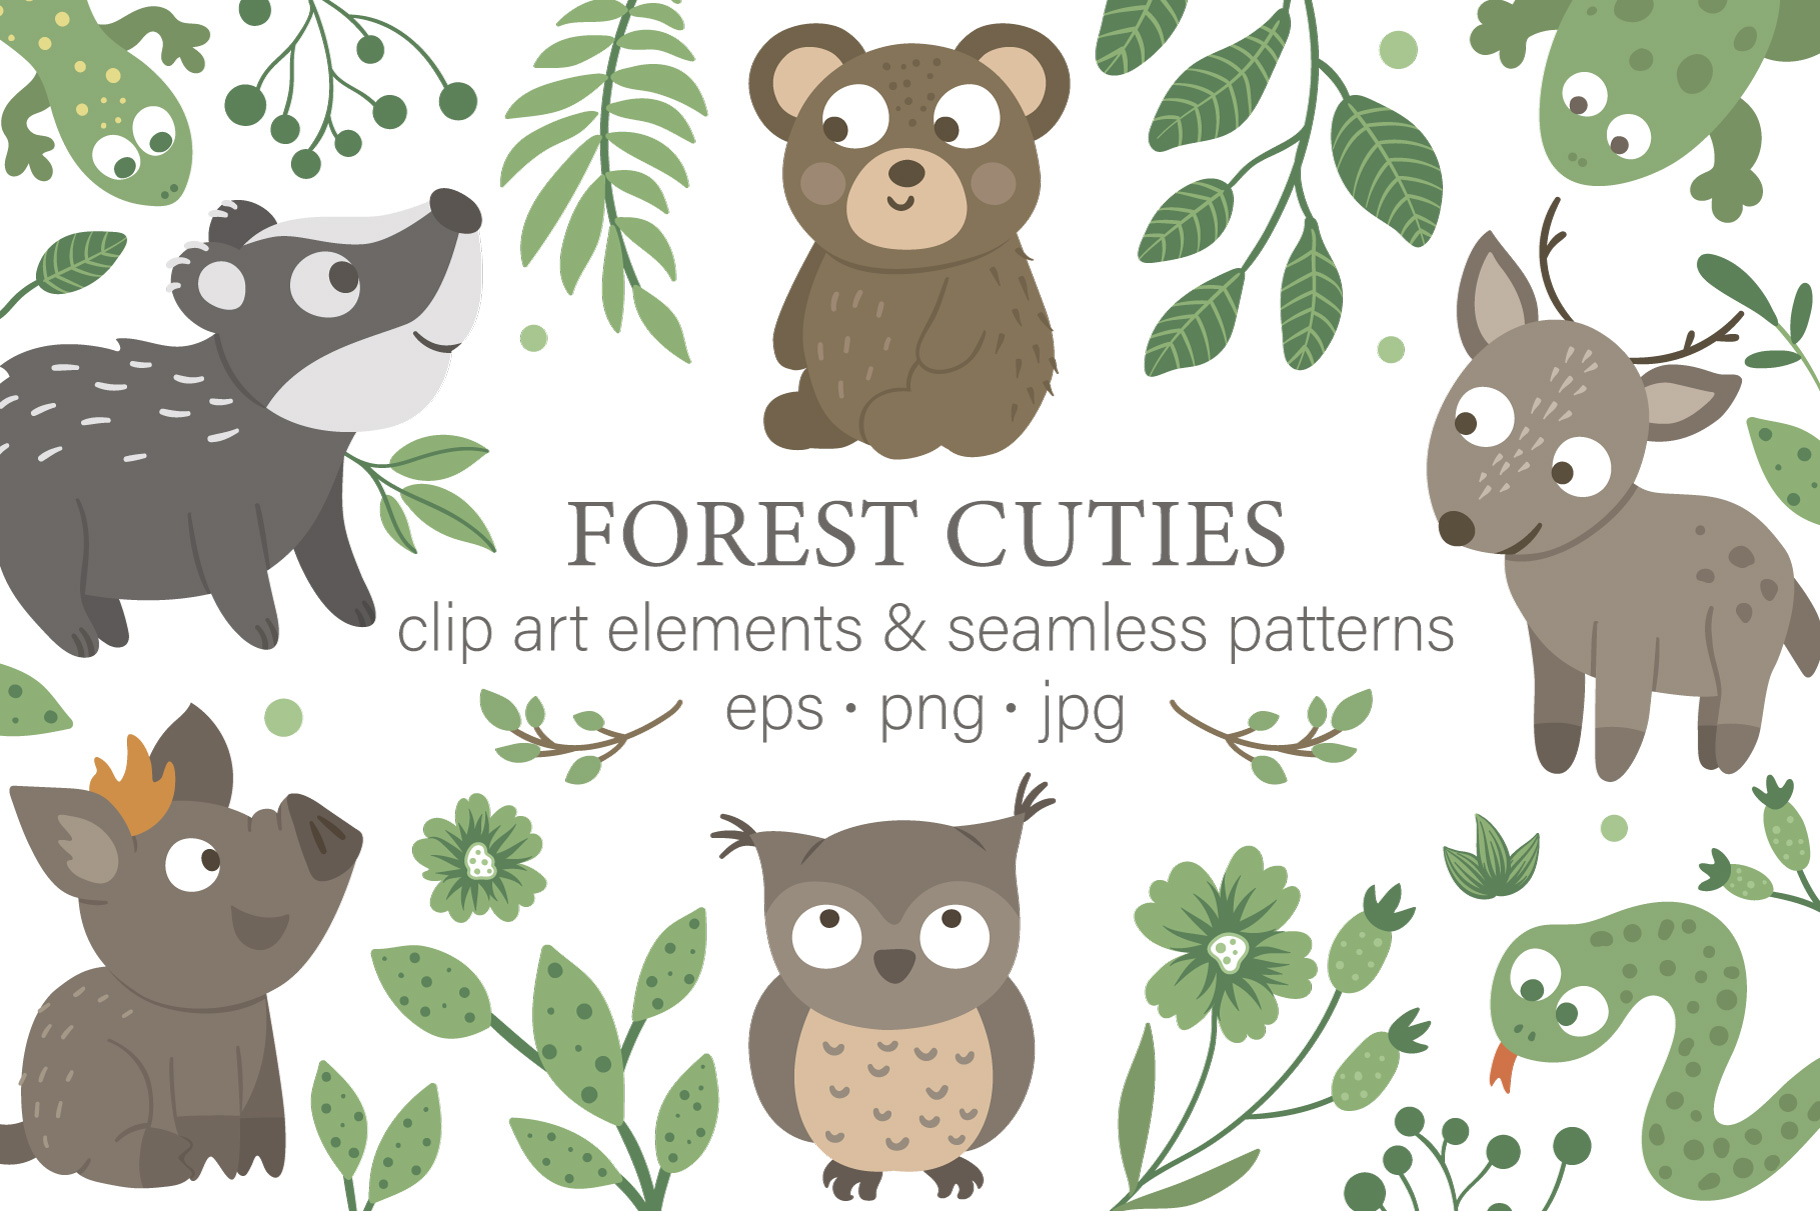 Download Free Forest Cuties Graphic By Lexiclaus Creative Fabrica for Cricut Explore, Silhouette and other cutting machines.